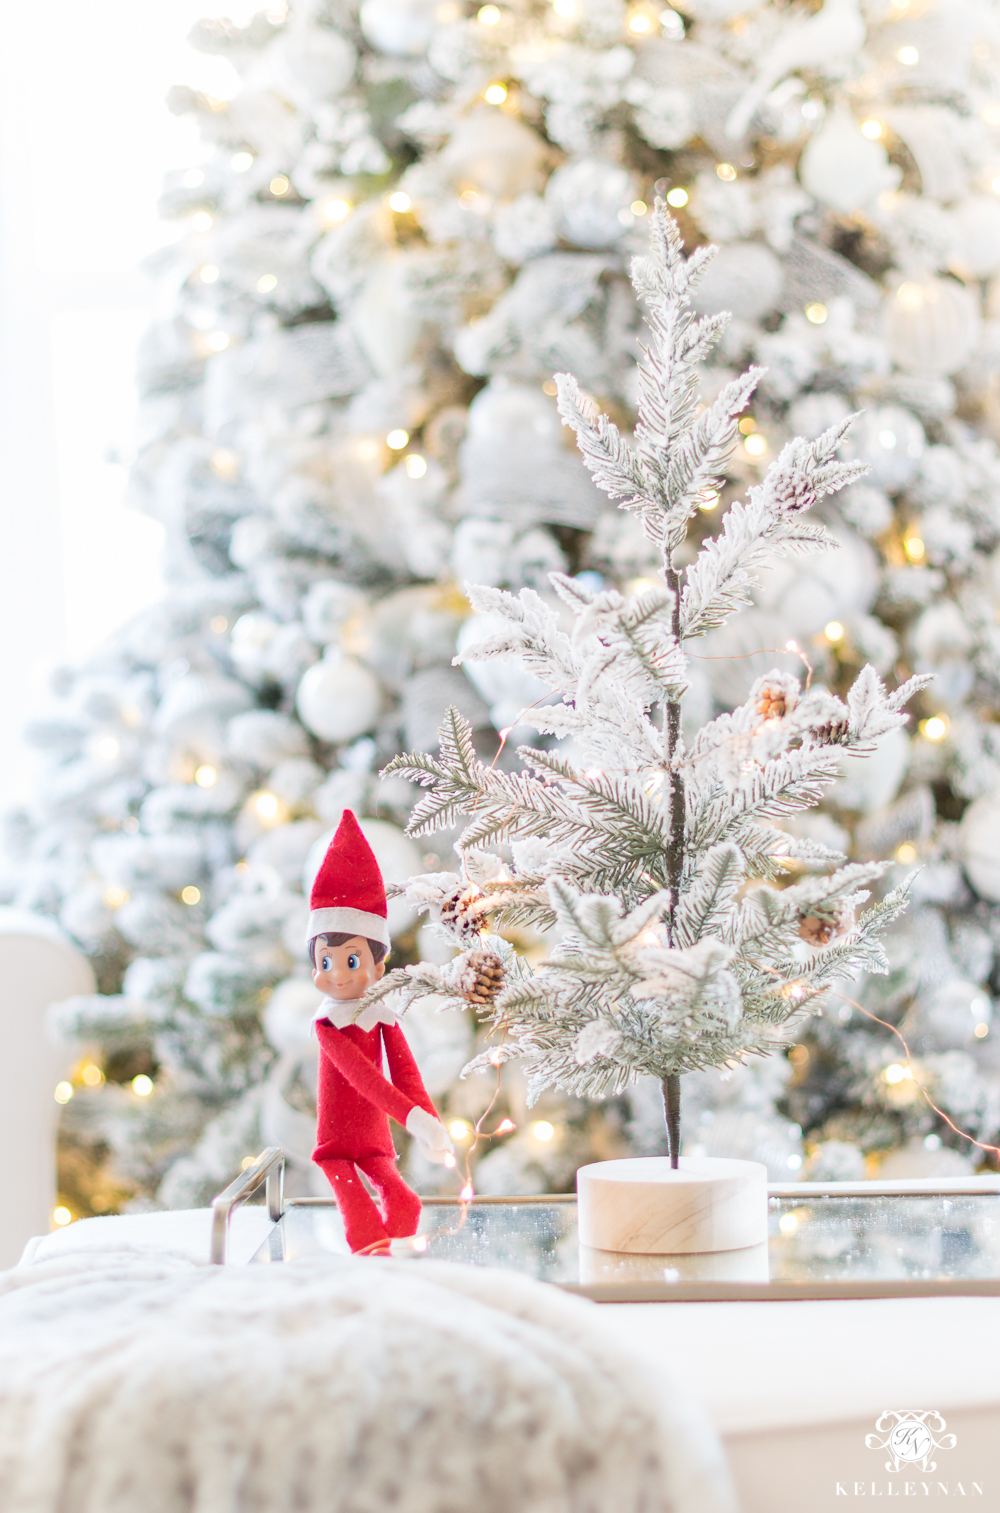 Elf on the shelf decorating a christmas tree